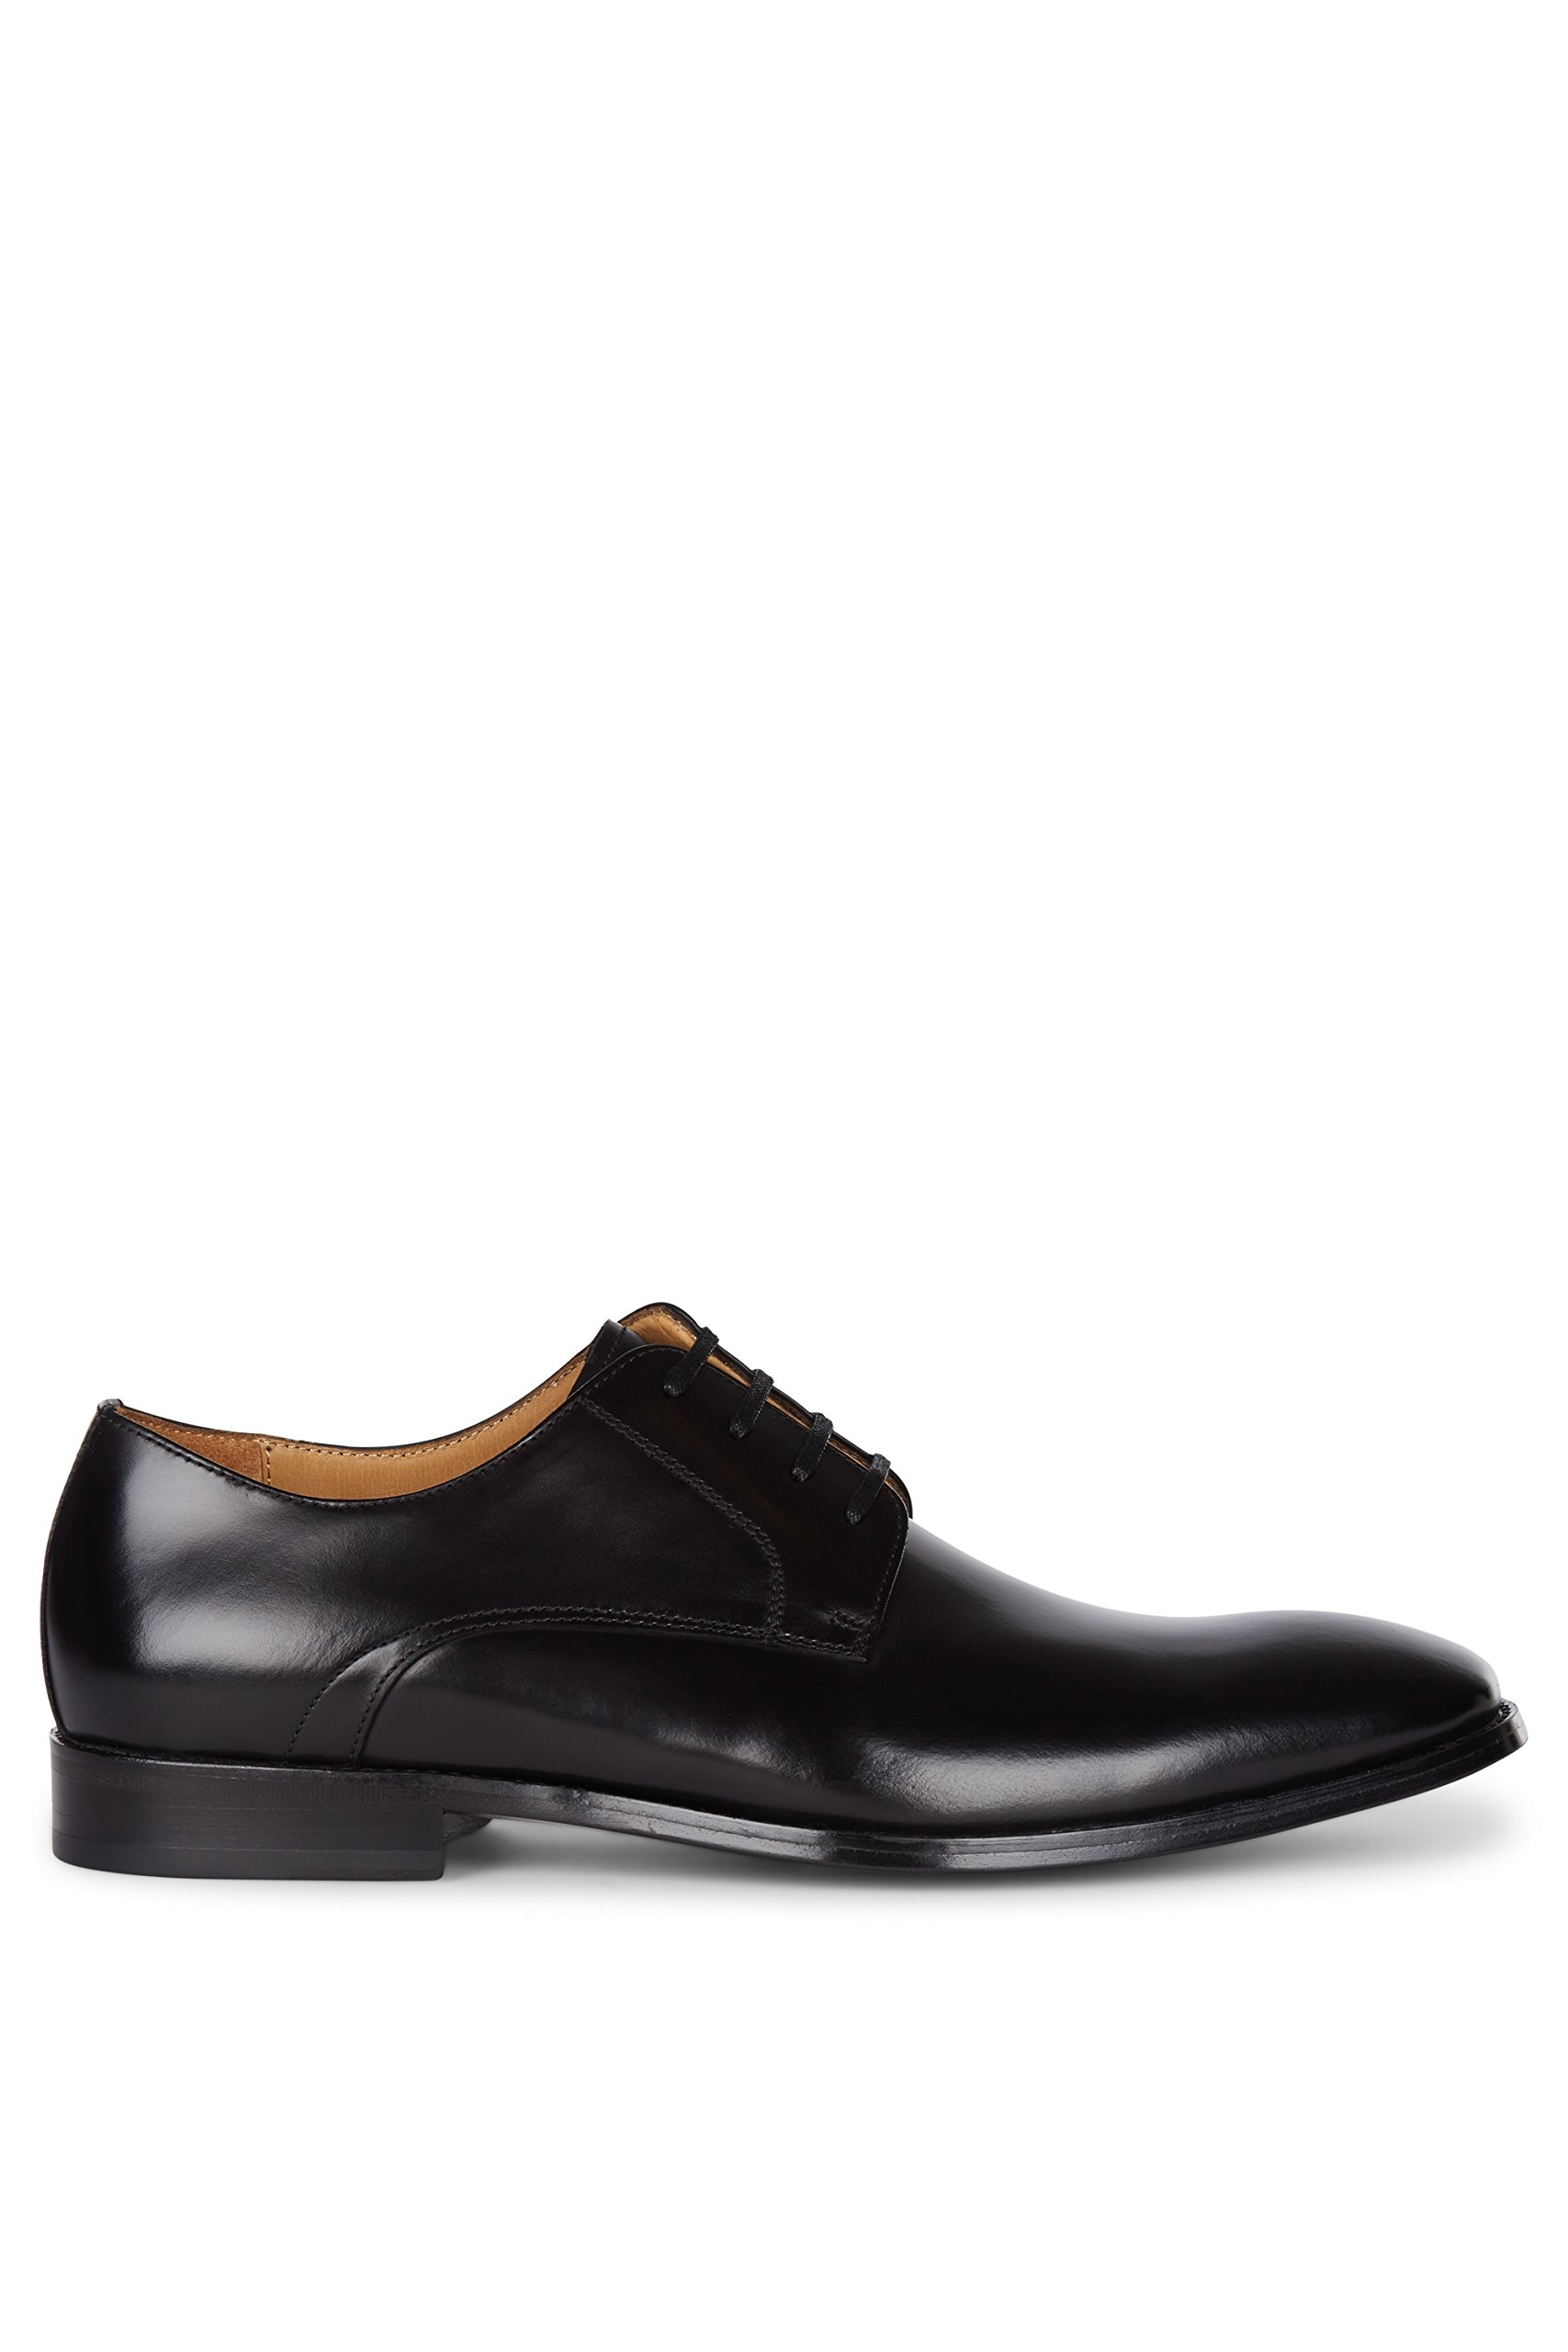 Hardy Amies Men's Black Derby Shoes 9.5 by Hardy Amies